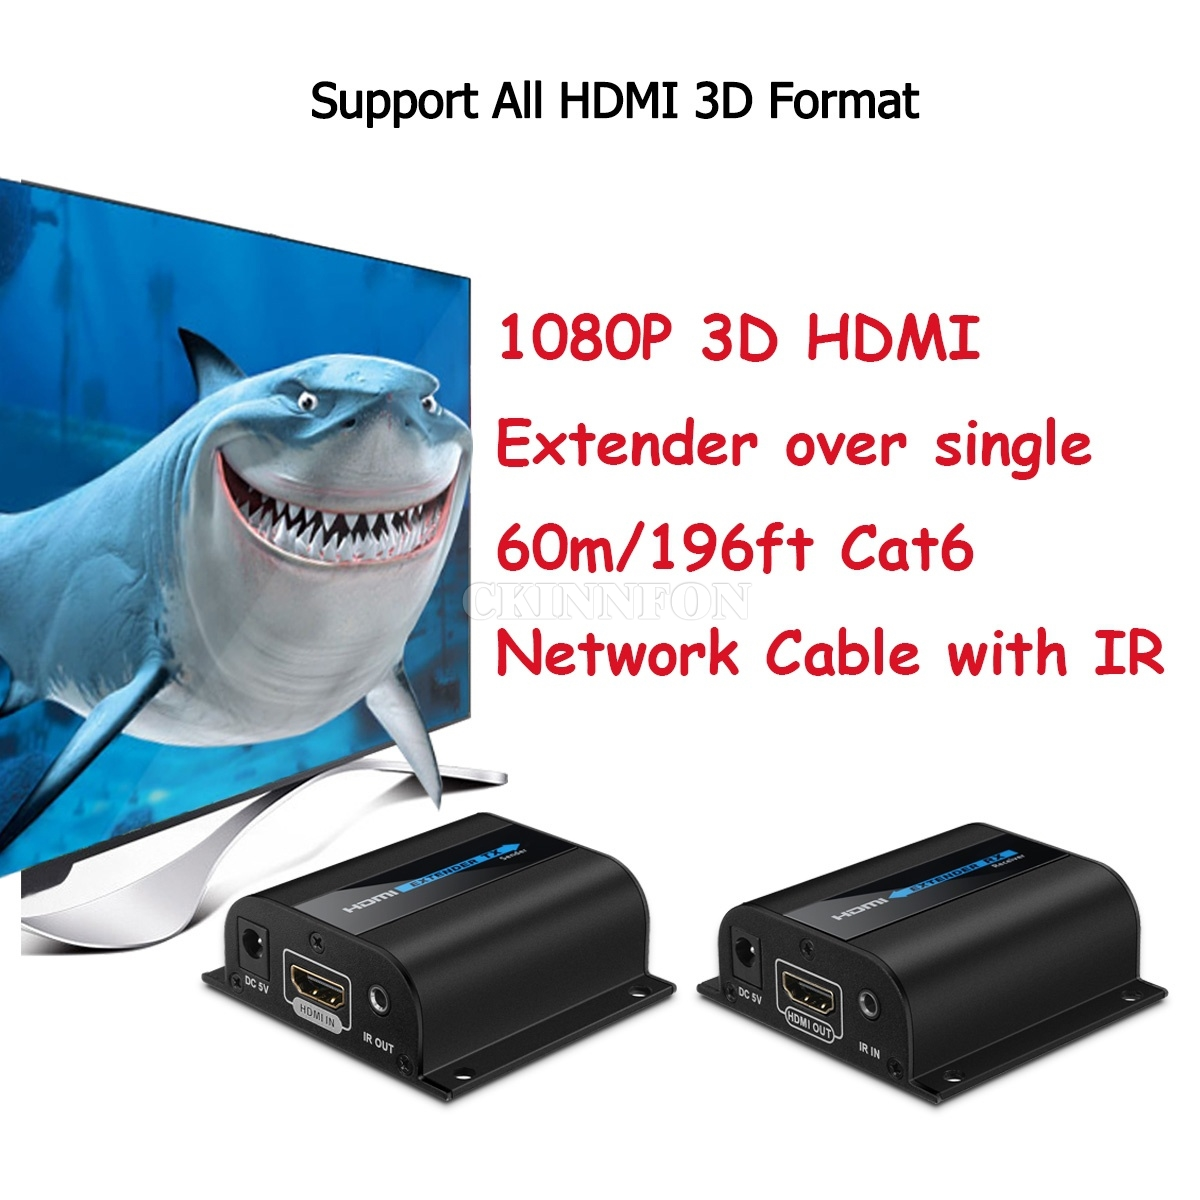 DHL 5 Sets LKV372A 1080P 3D HDMI Extender Over Single 60m/196ft Cat6 Network Cable With IR